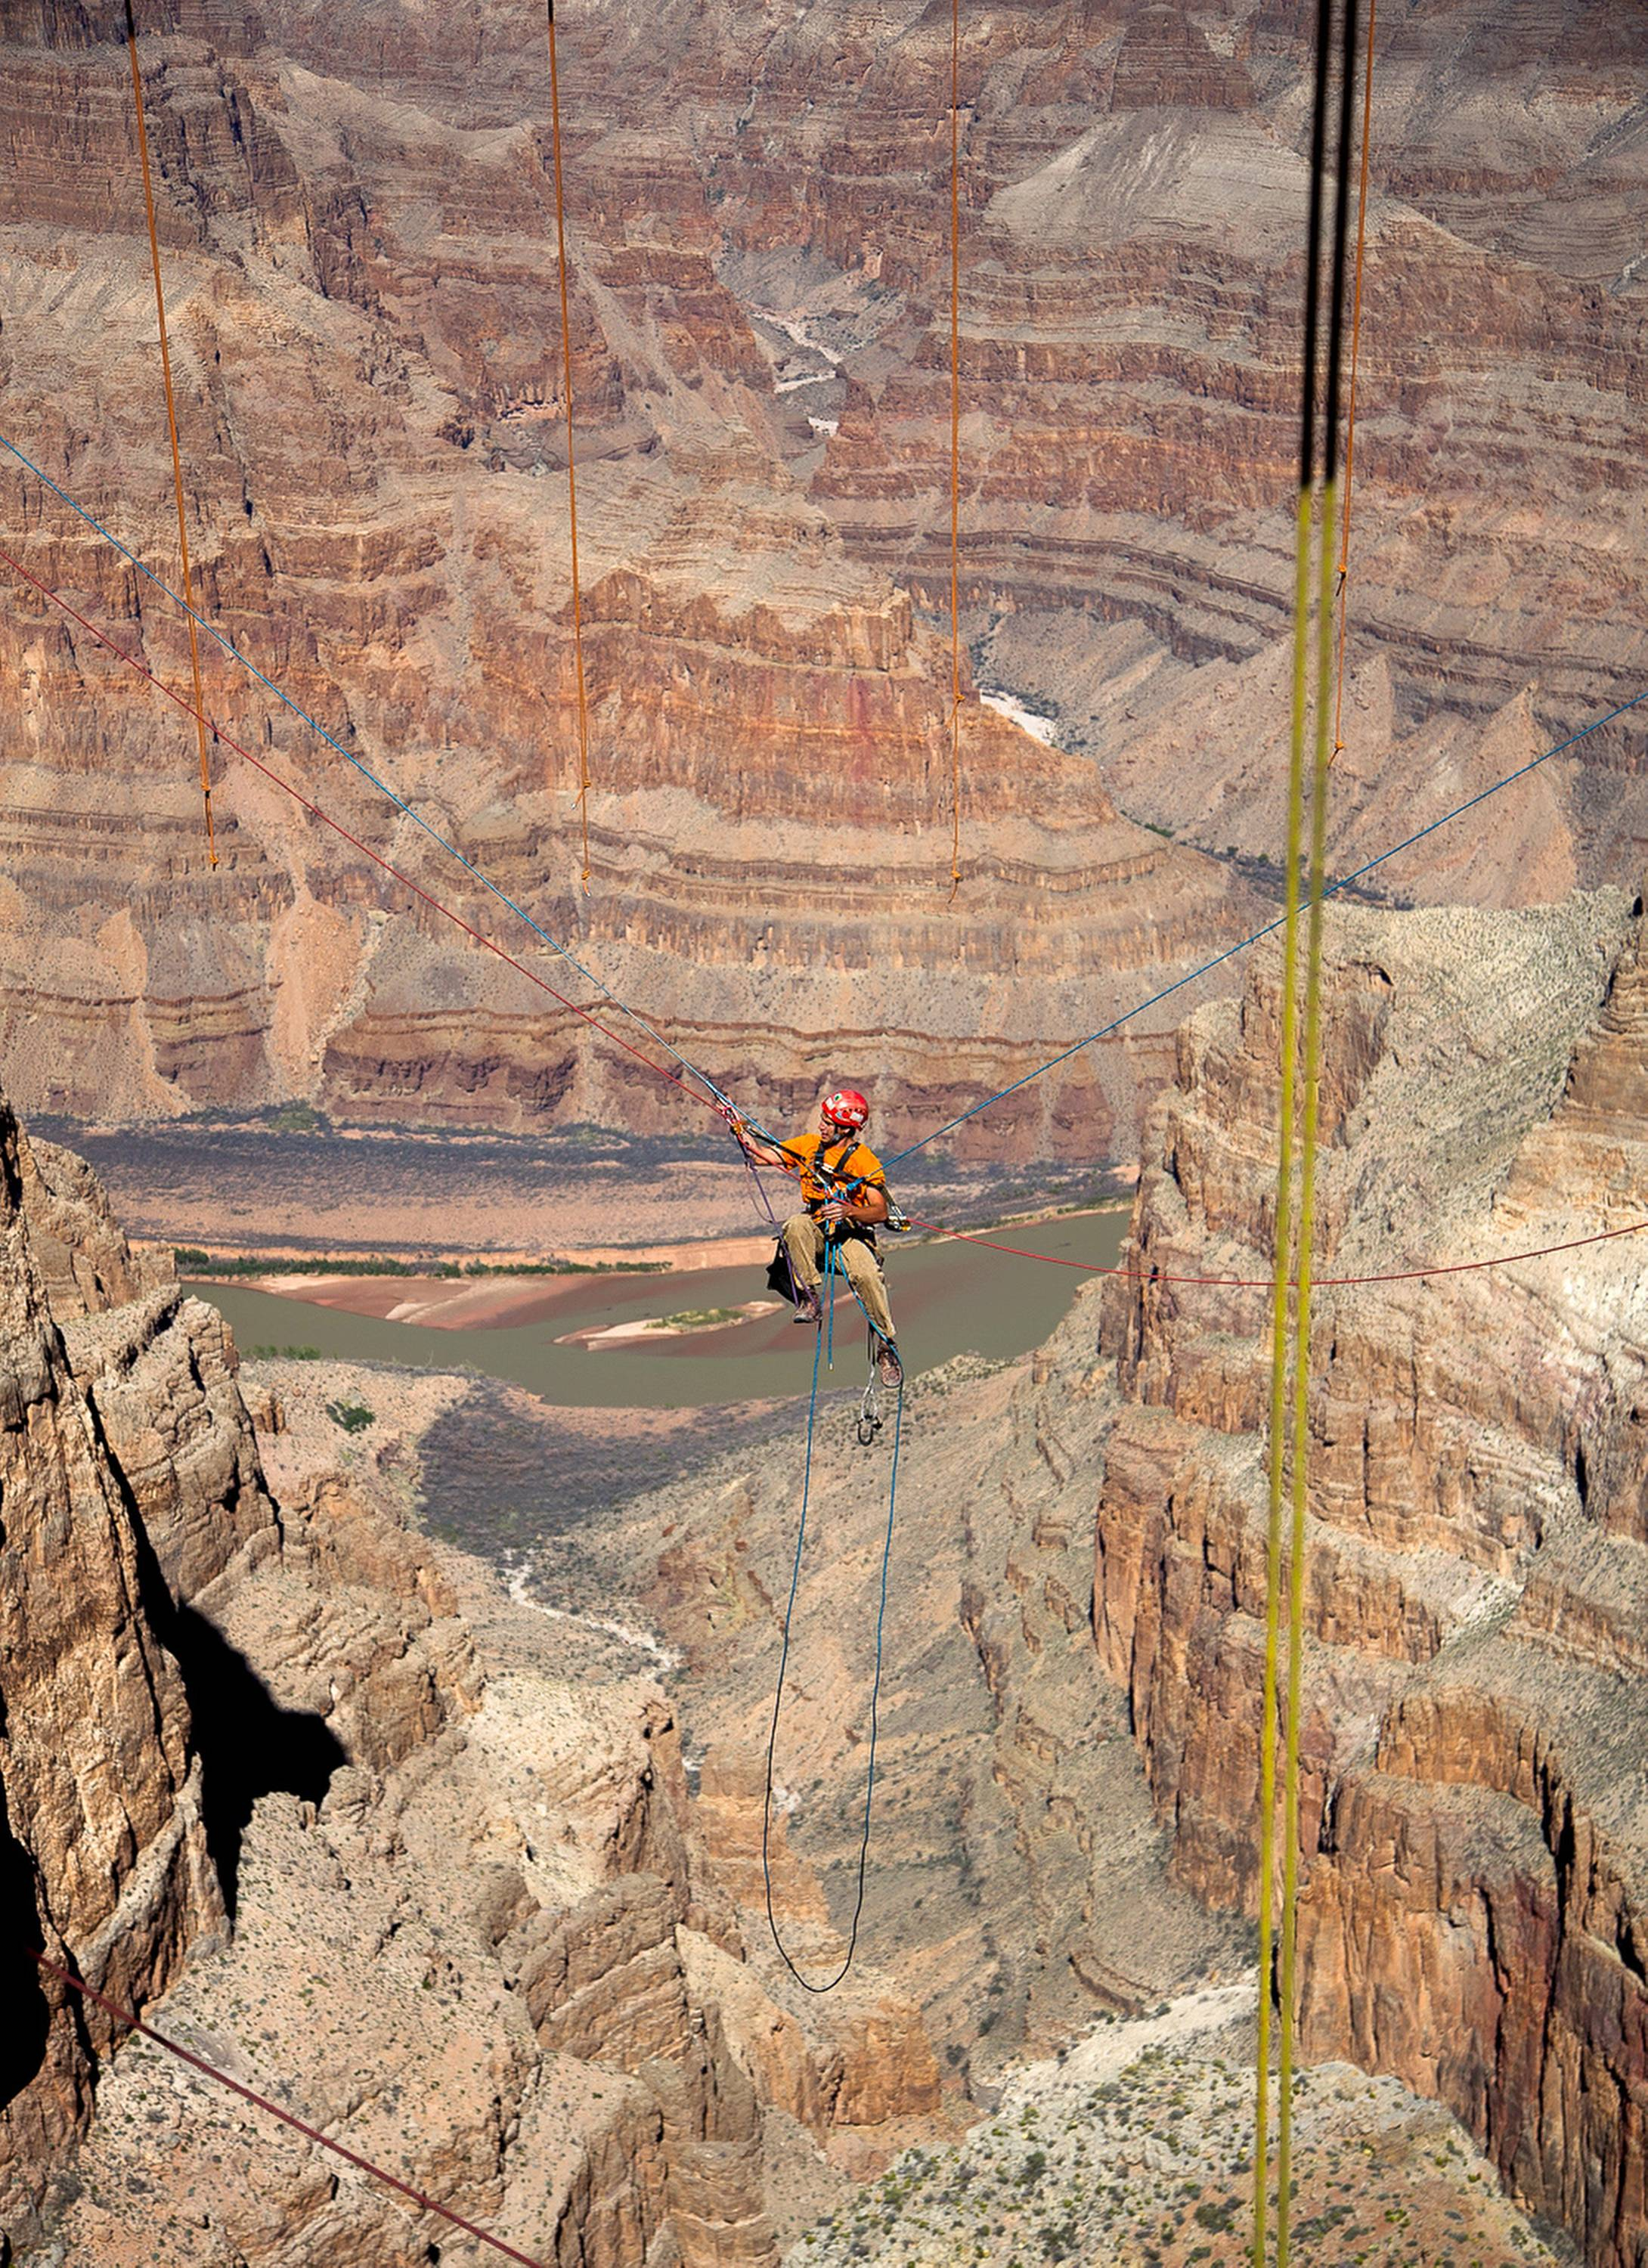 A technician dangles from a series of ropes before polishing the underside glass at Grand Canyon Skywalk in Hualapai Reservation, Ariz.